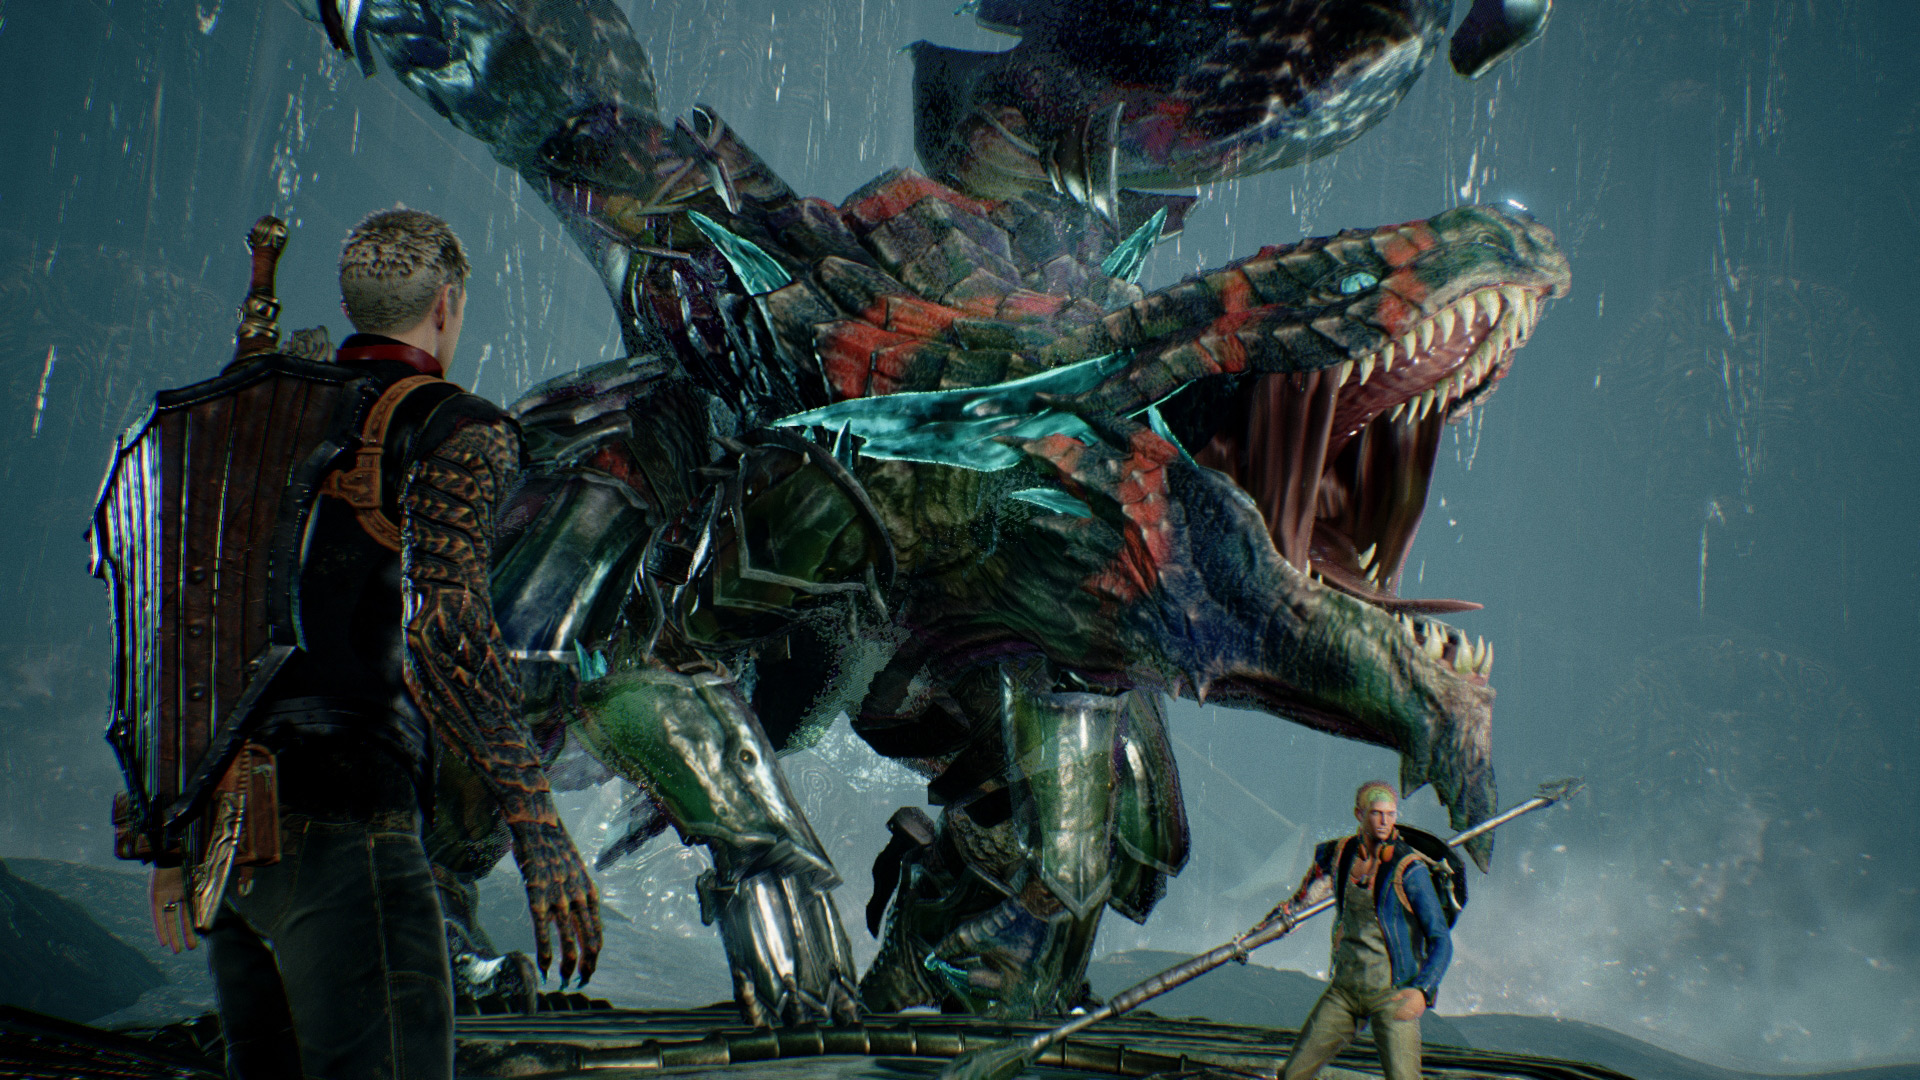 PlatinumGames' Scalebound supports co-op multiplayer from start to finish